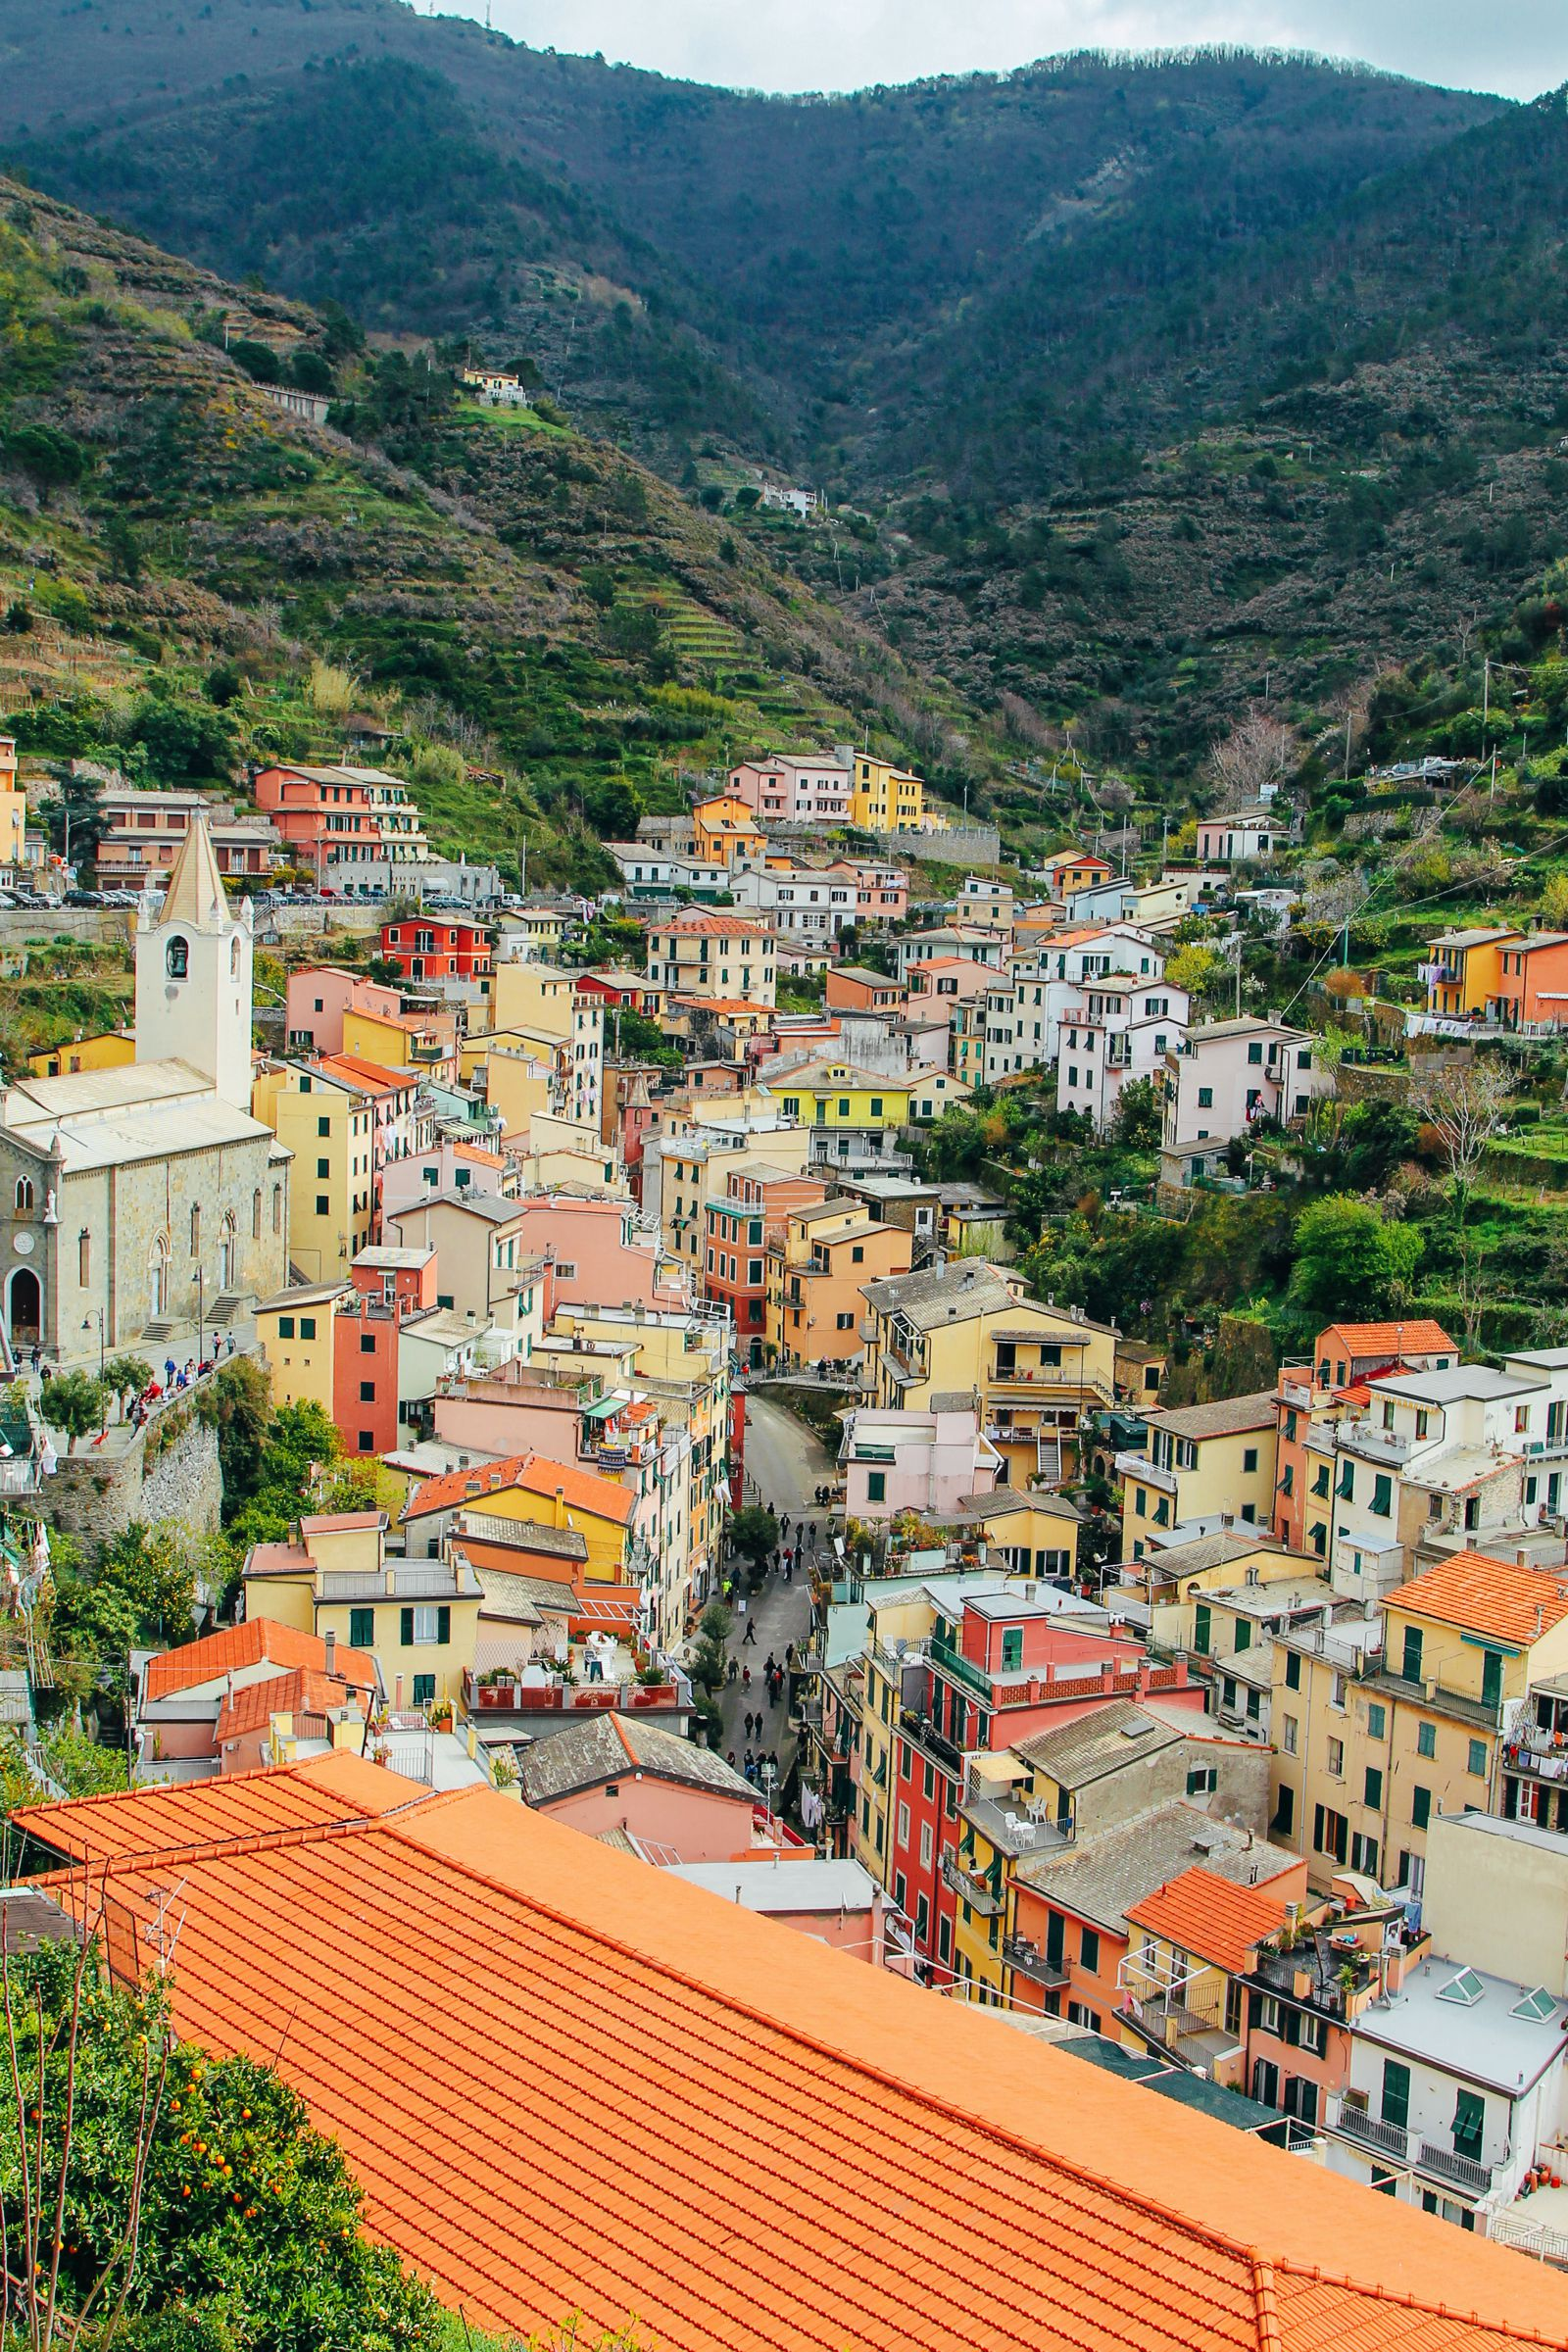 Riomaggiore in Cinque Terre, Italy - The Photo Diary! [1 of 5] (6)